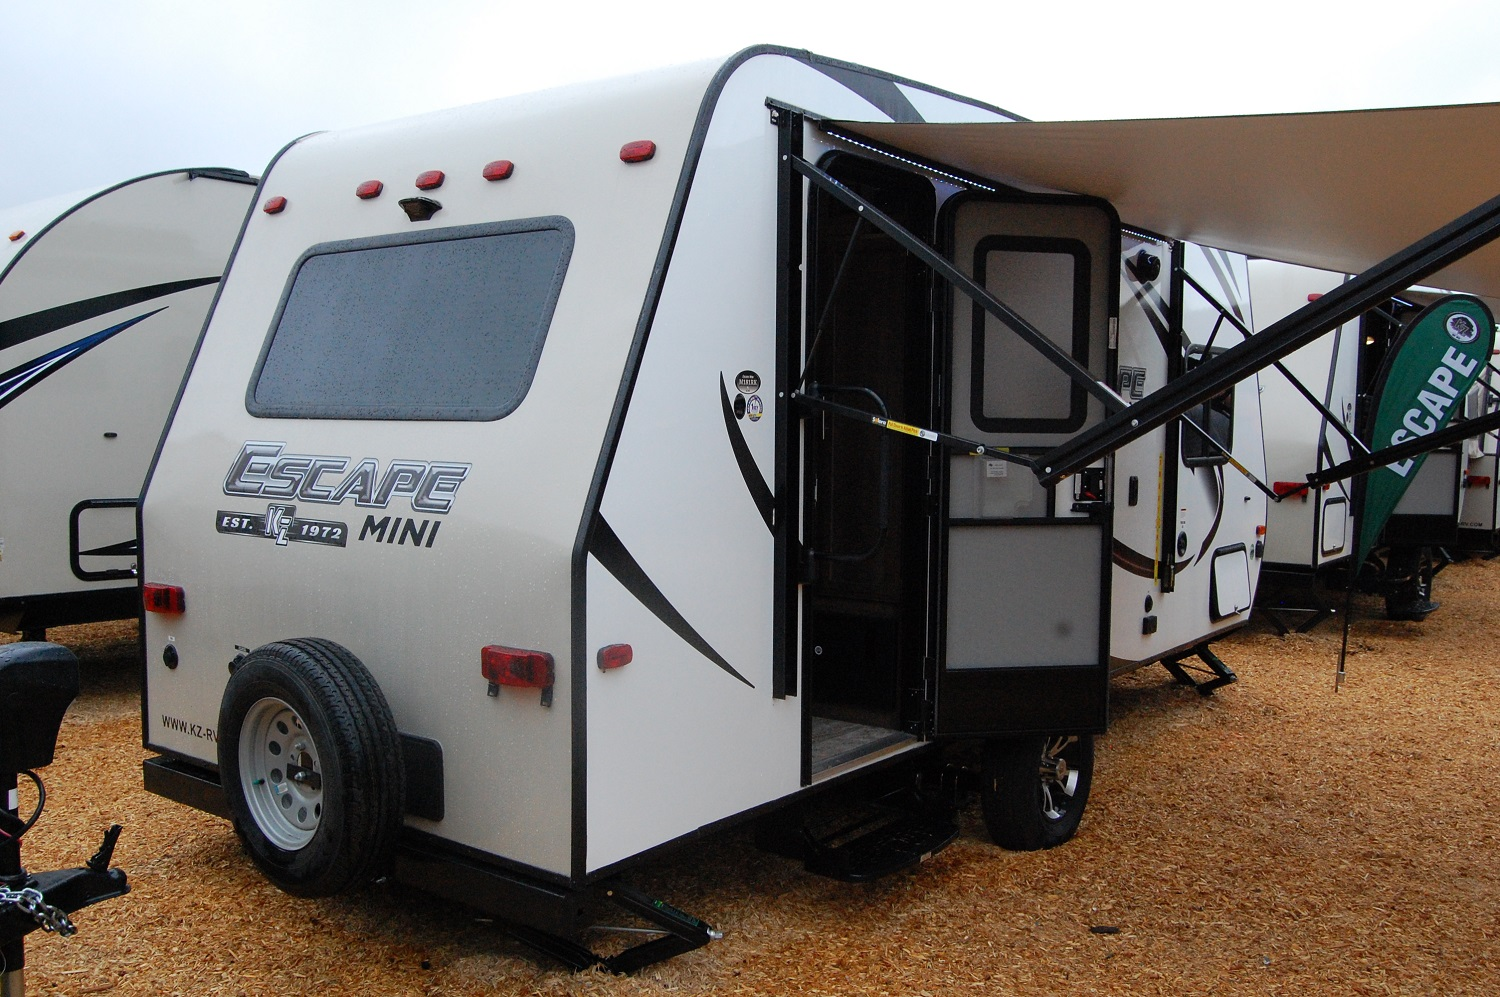 Contests and giveaways travel trailers